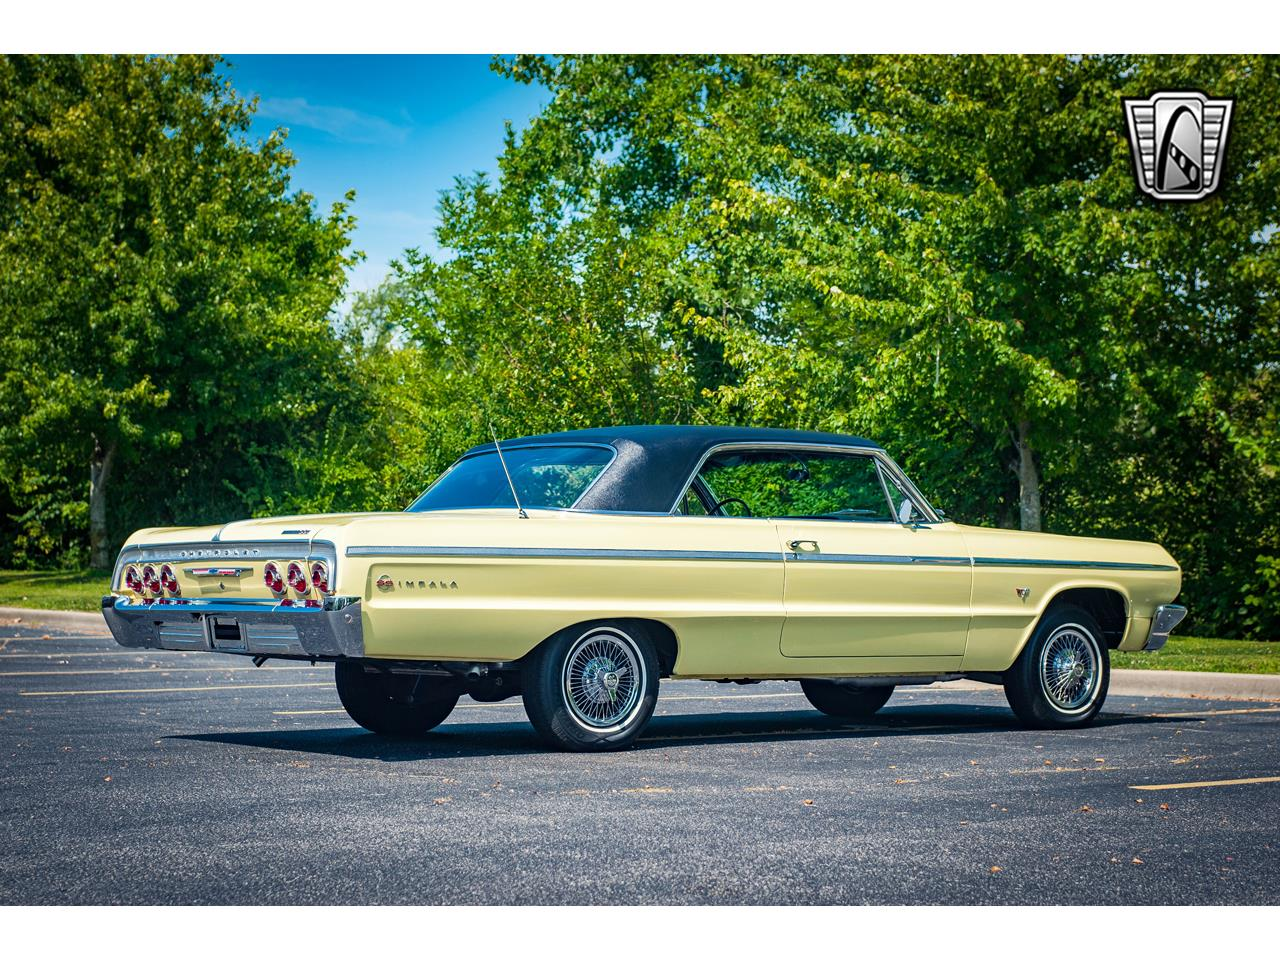 Large Picture of '64 Impala located in O'Fallon Illinois - $45,000.00 Offered by Gateway Classic Cars - St. Louis - QRDR